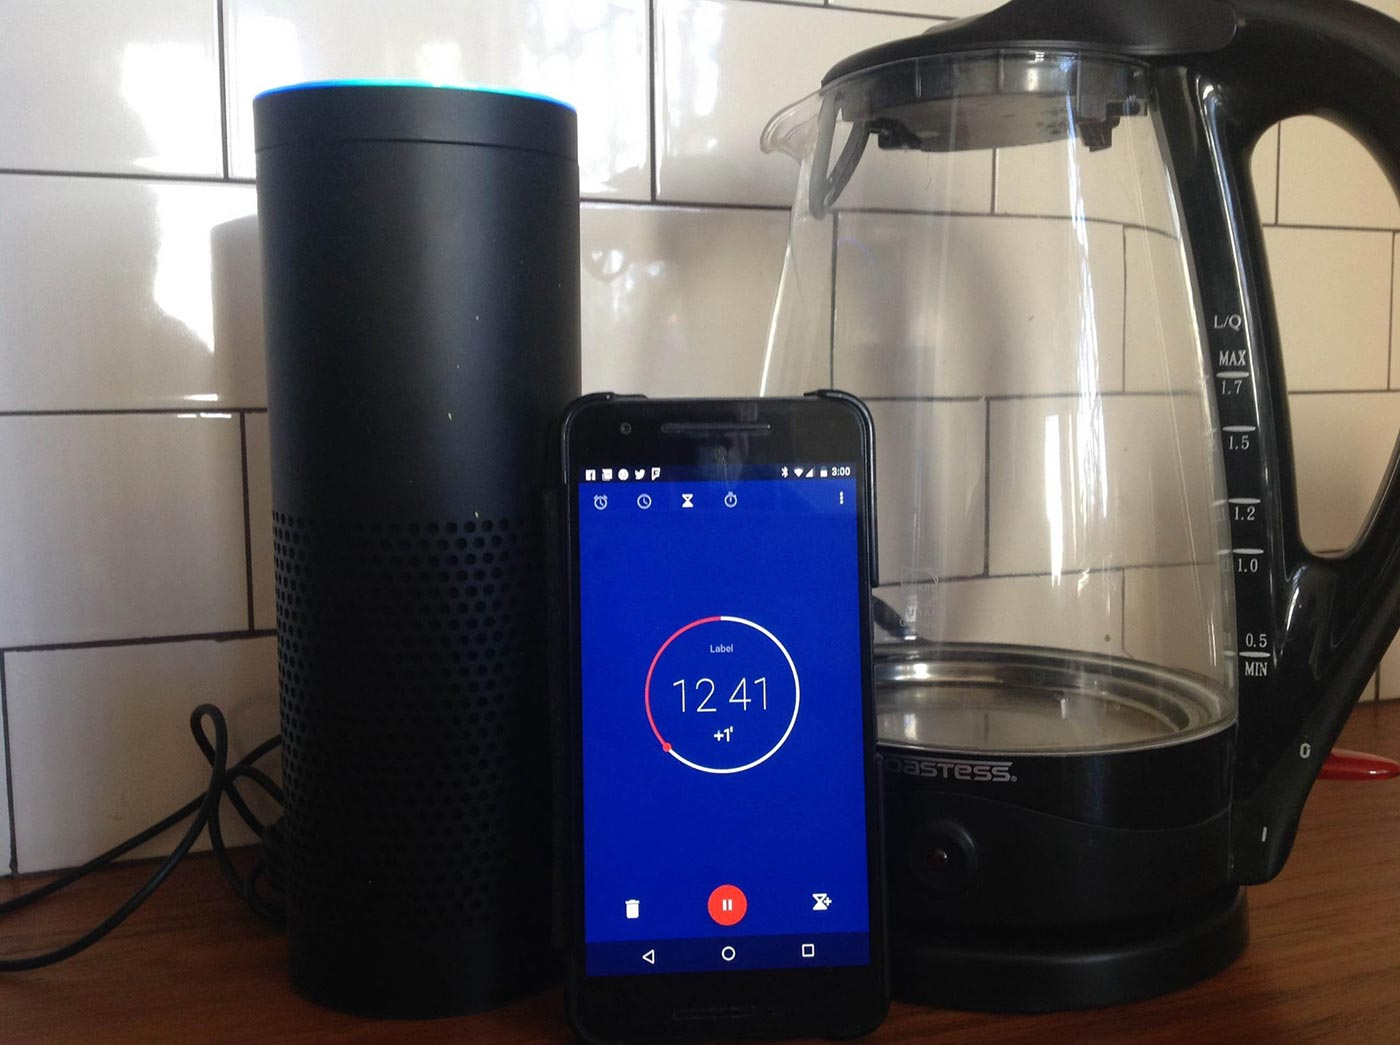 Tim O'Reilly's Alexa, his Nexus 6P, and his kettle. It's his kitchen's attack on the cell phone OS.